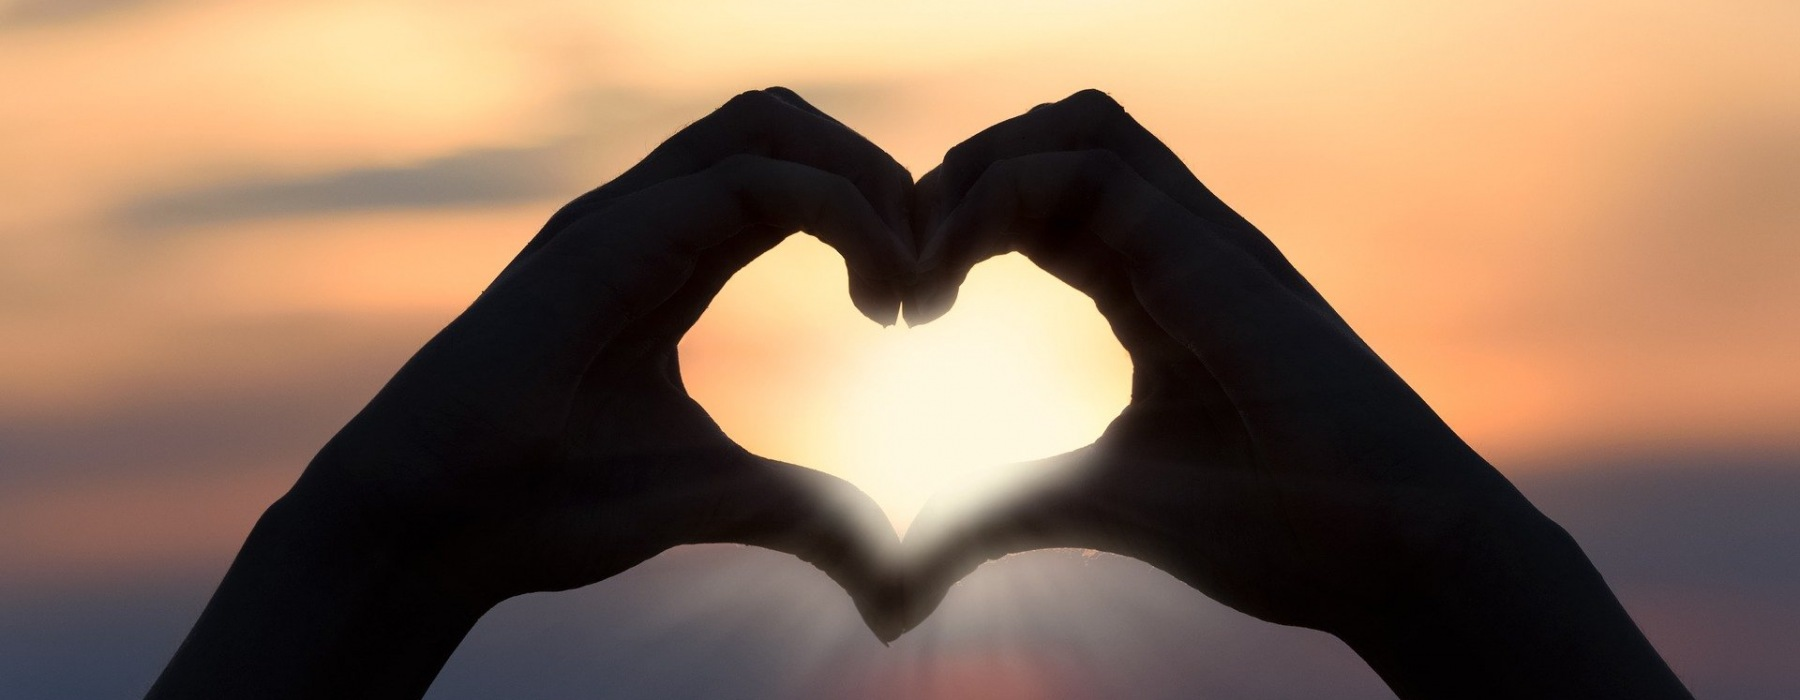 Hands shaping a heart silhouetted again the sunset